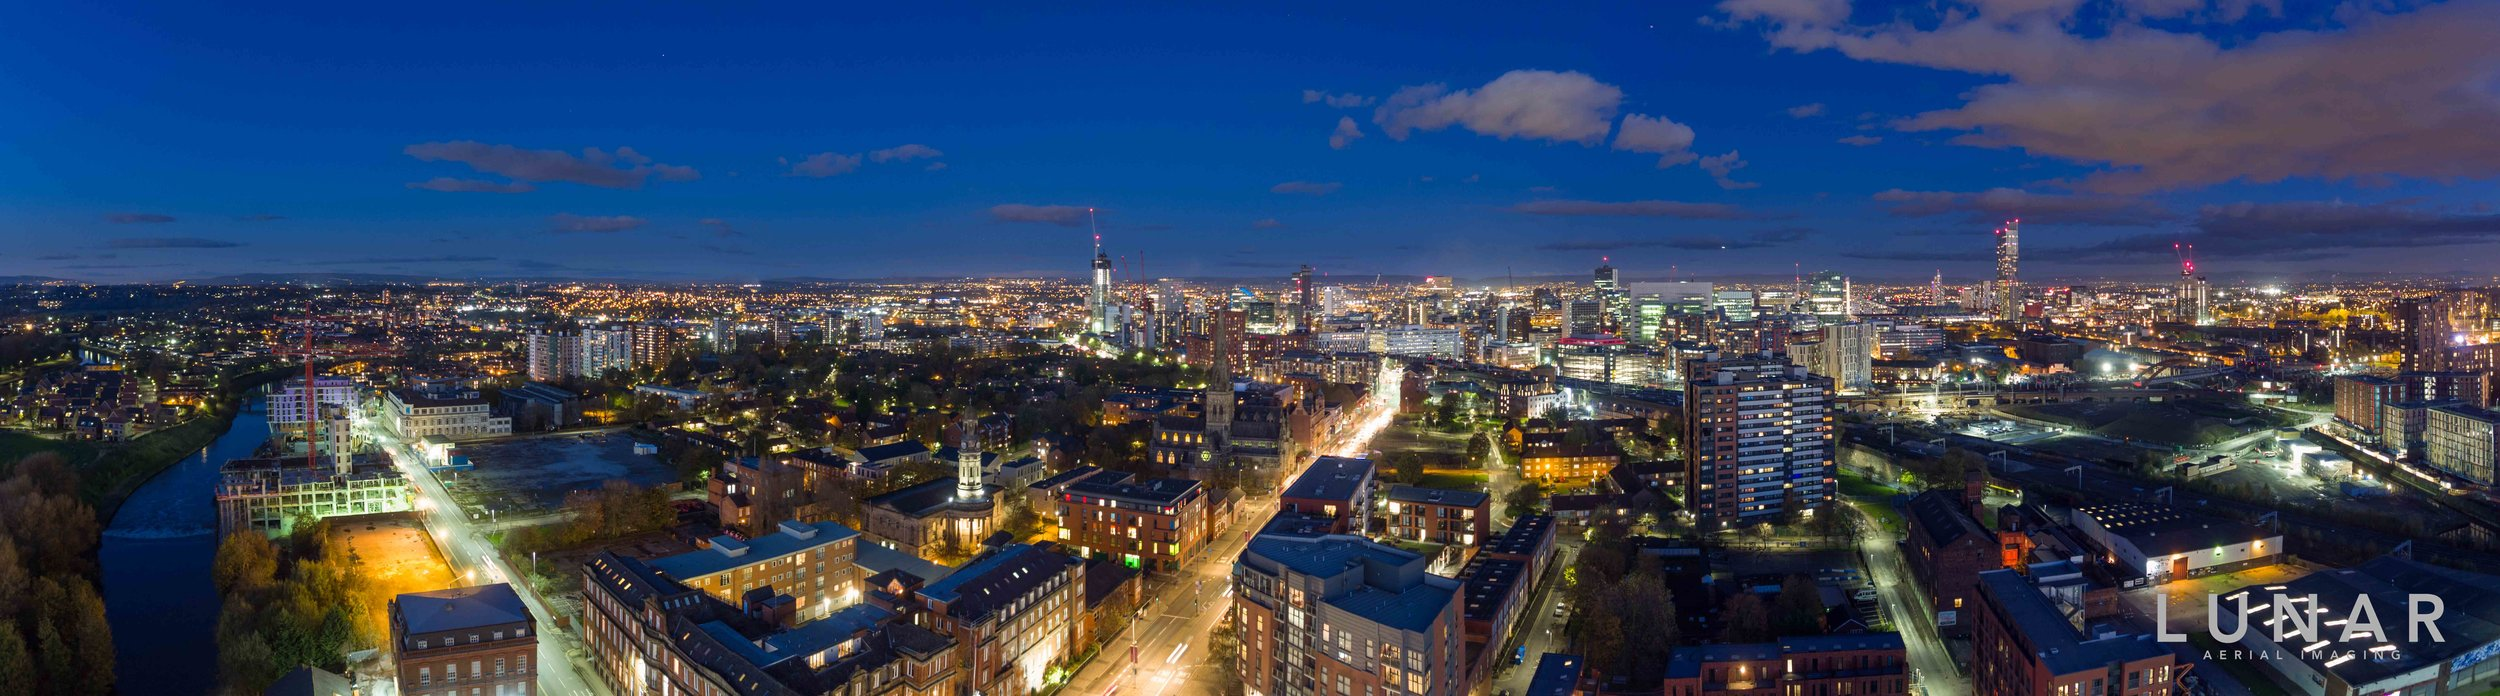 Wide aerial photo of Manchester skyline at night